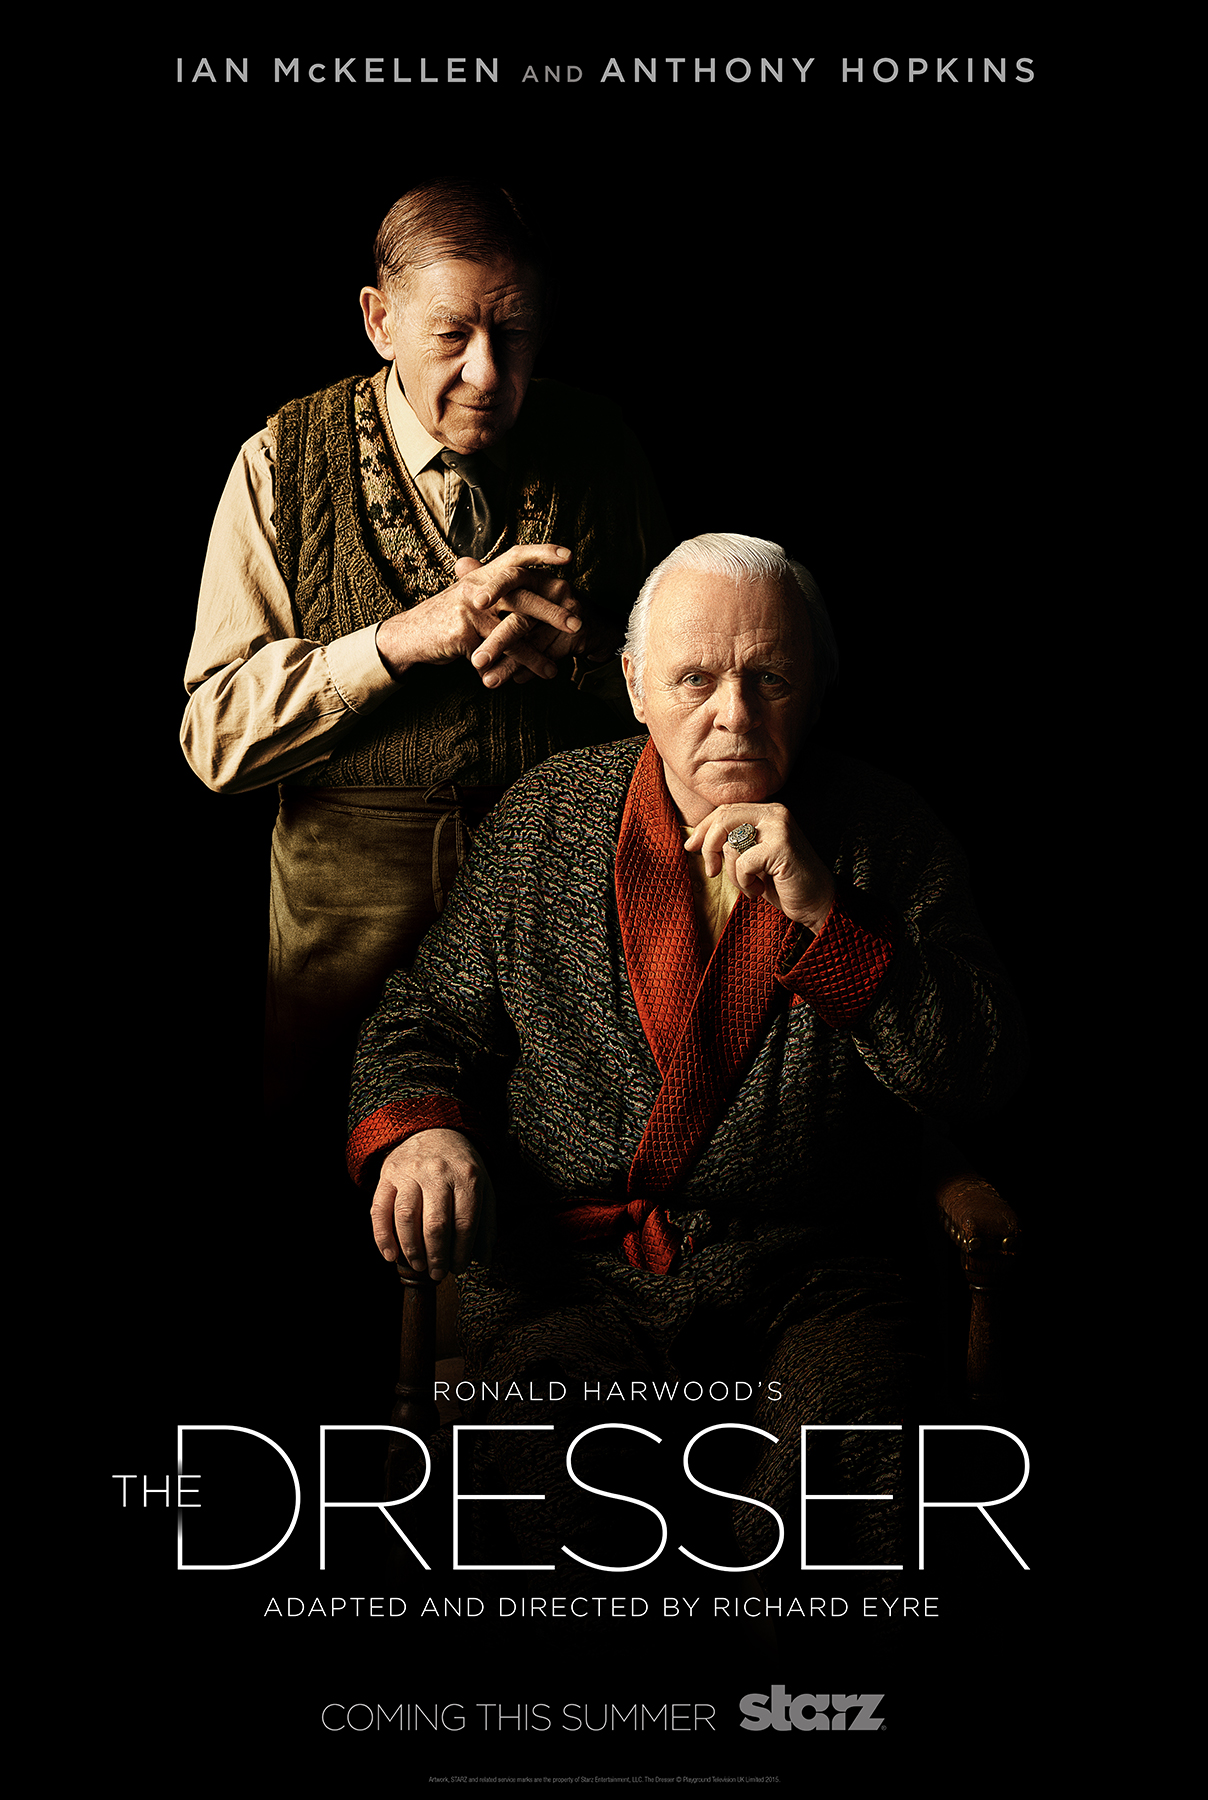 The Dresser Image And Key Art